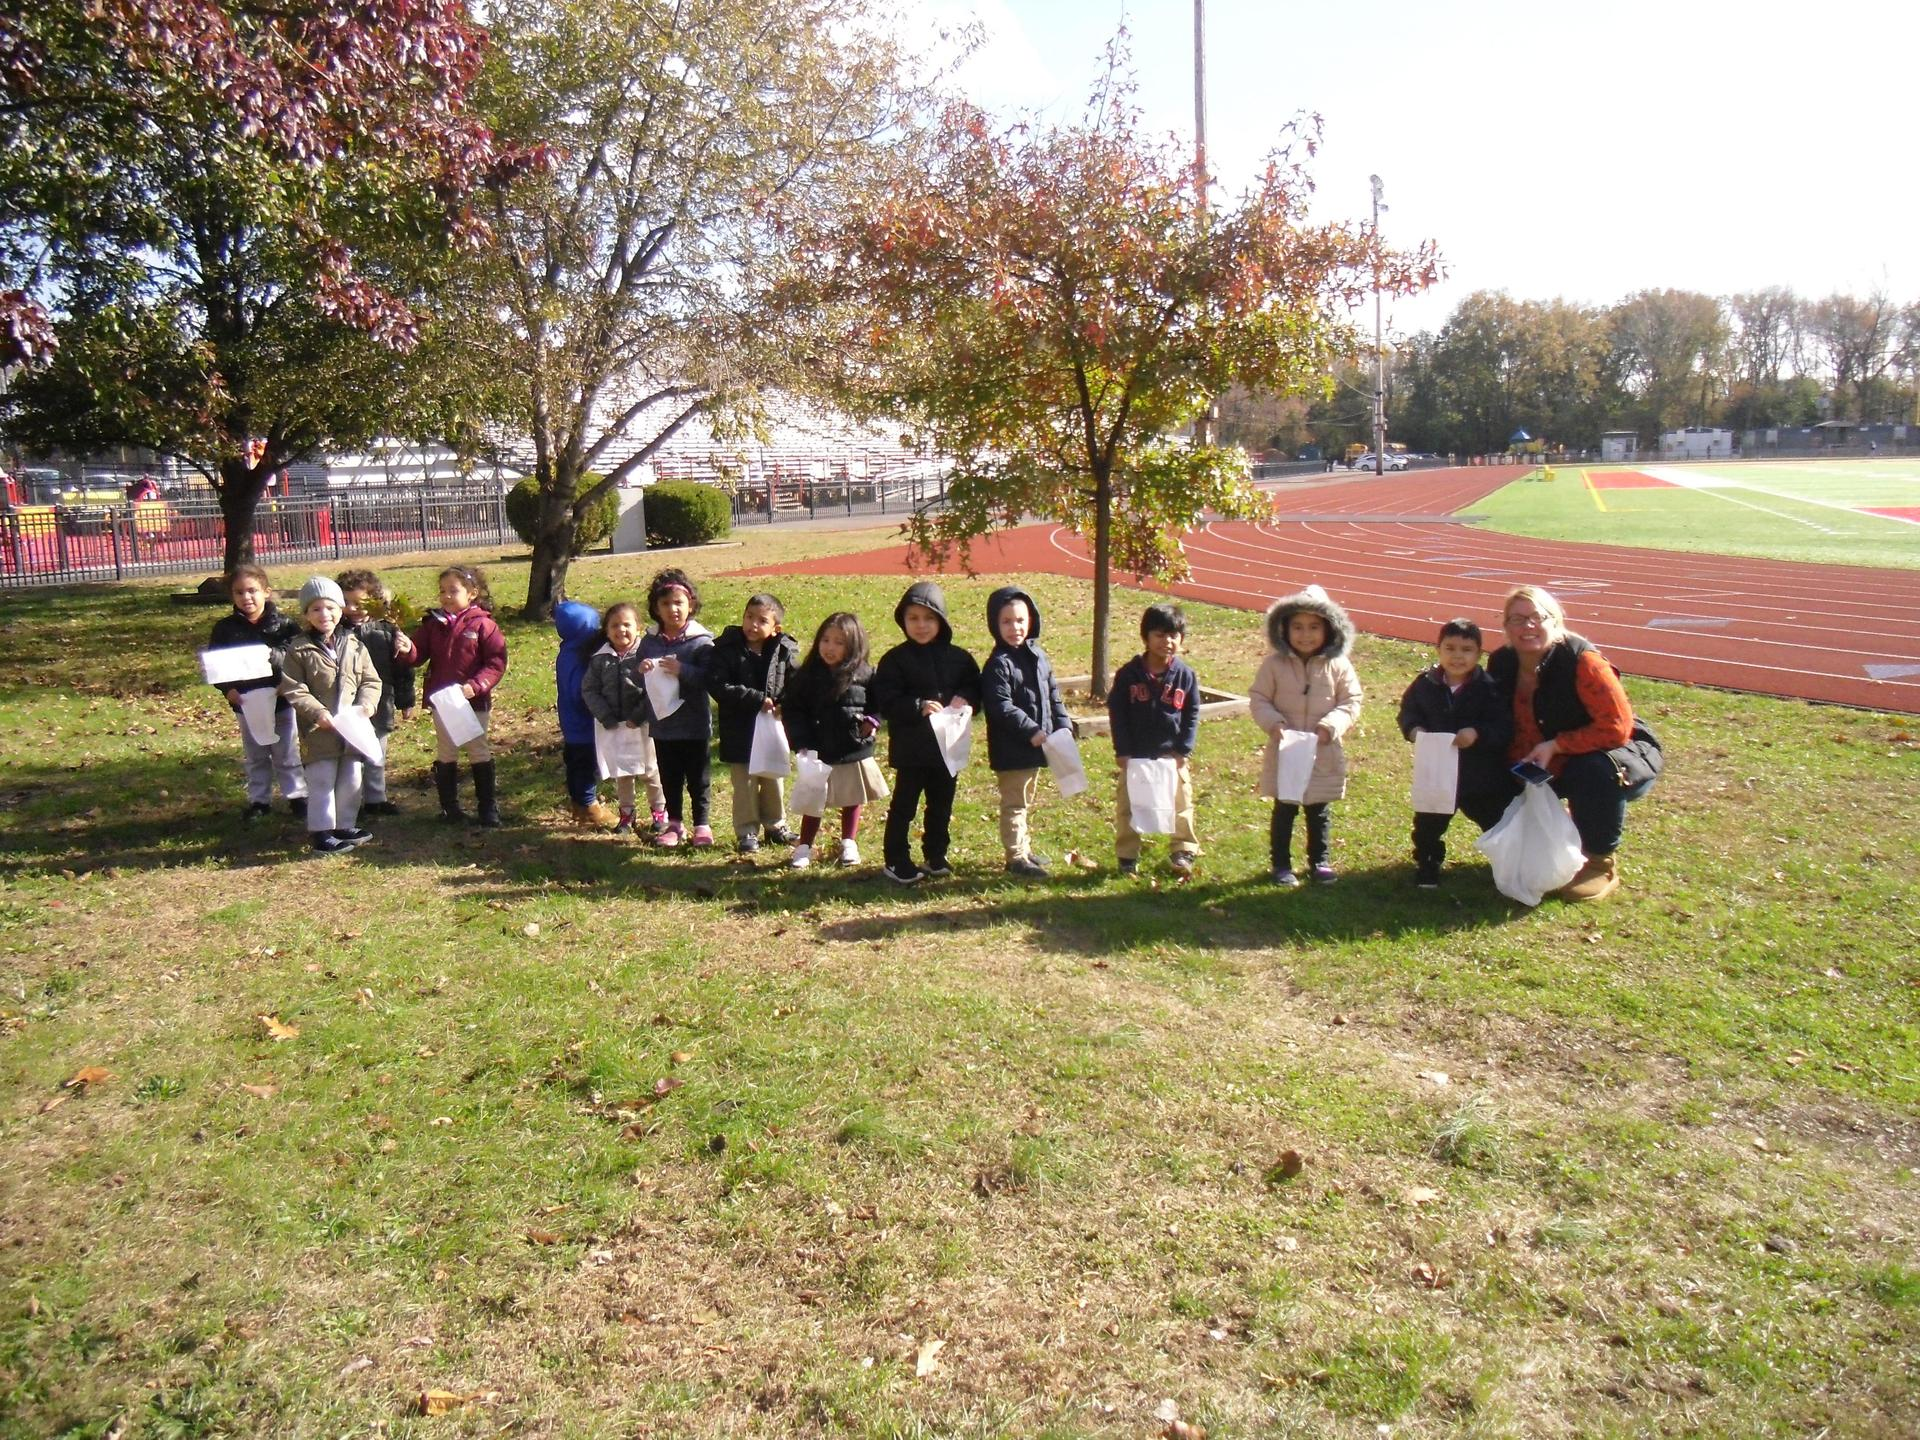 Class picture with north bergen students